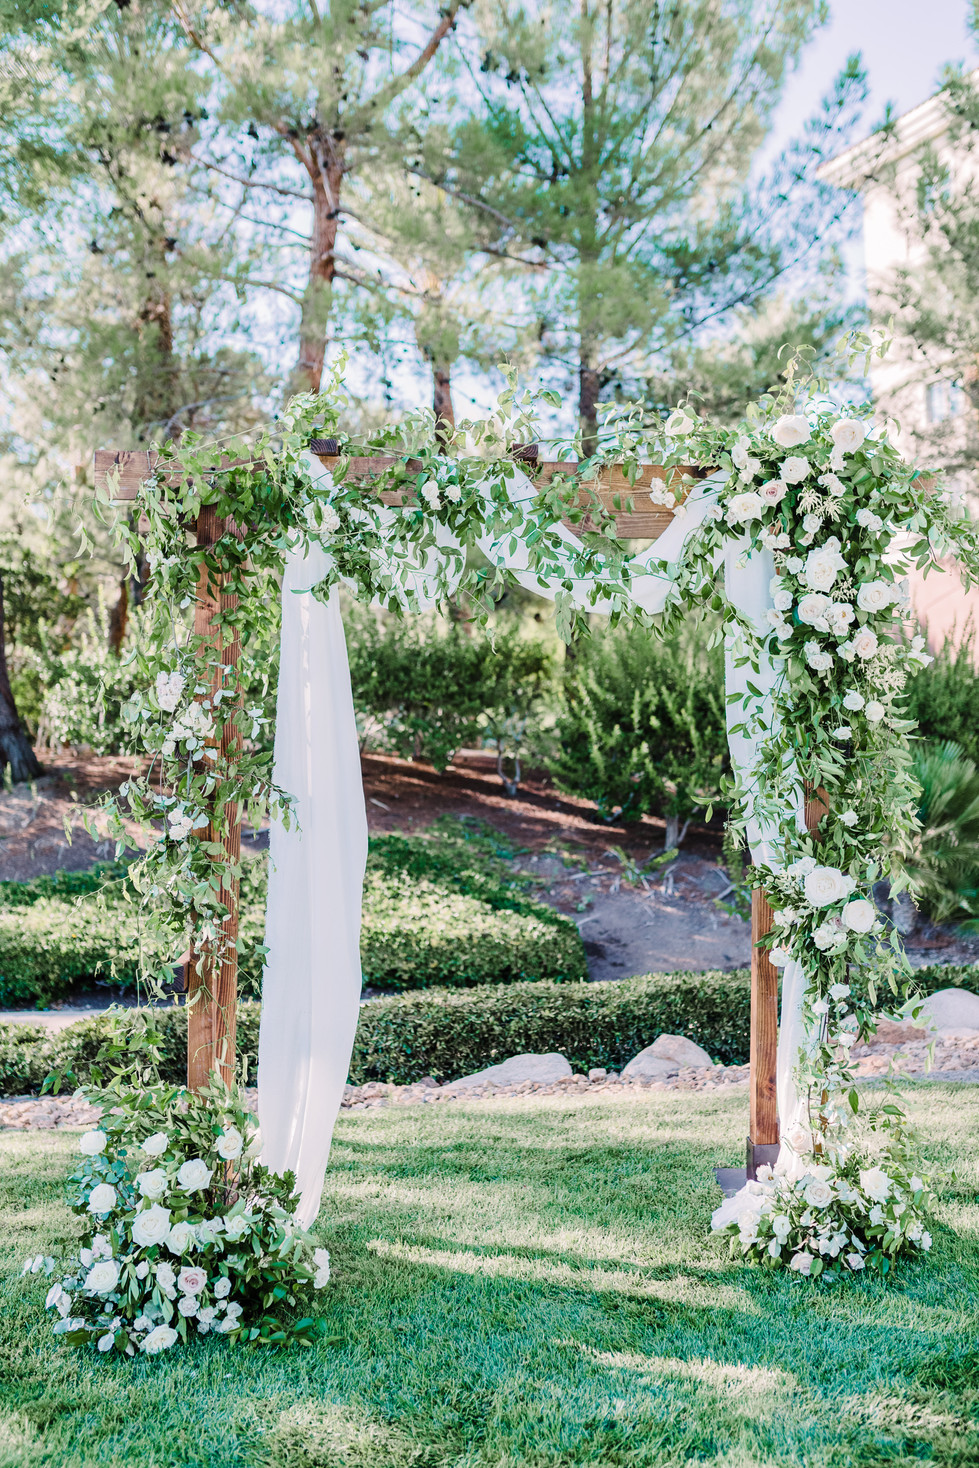 Rustic Ceremony Arch. Photo: Kristen Joy